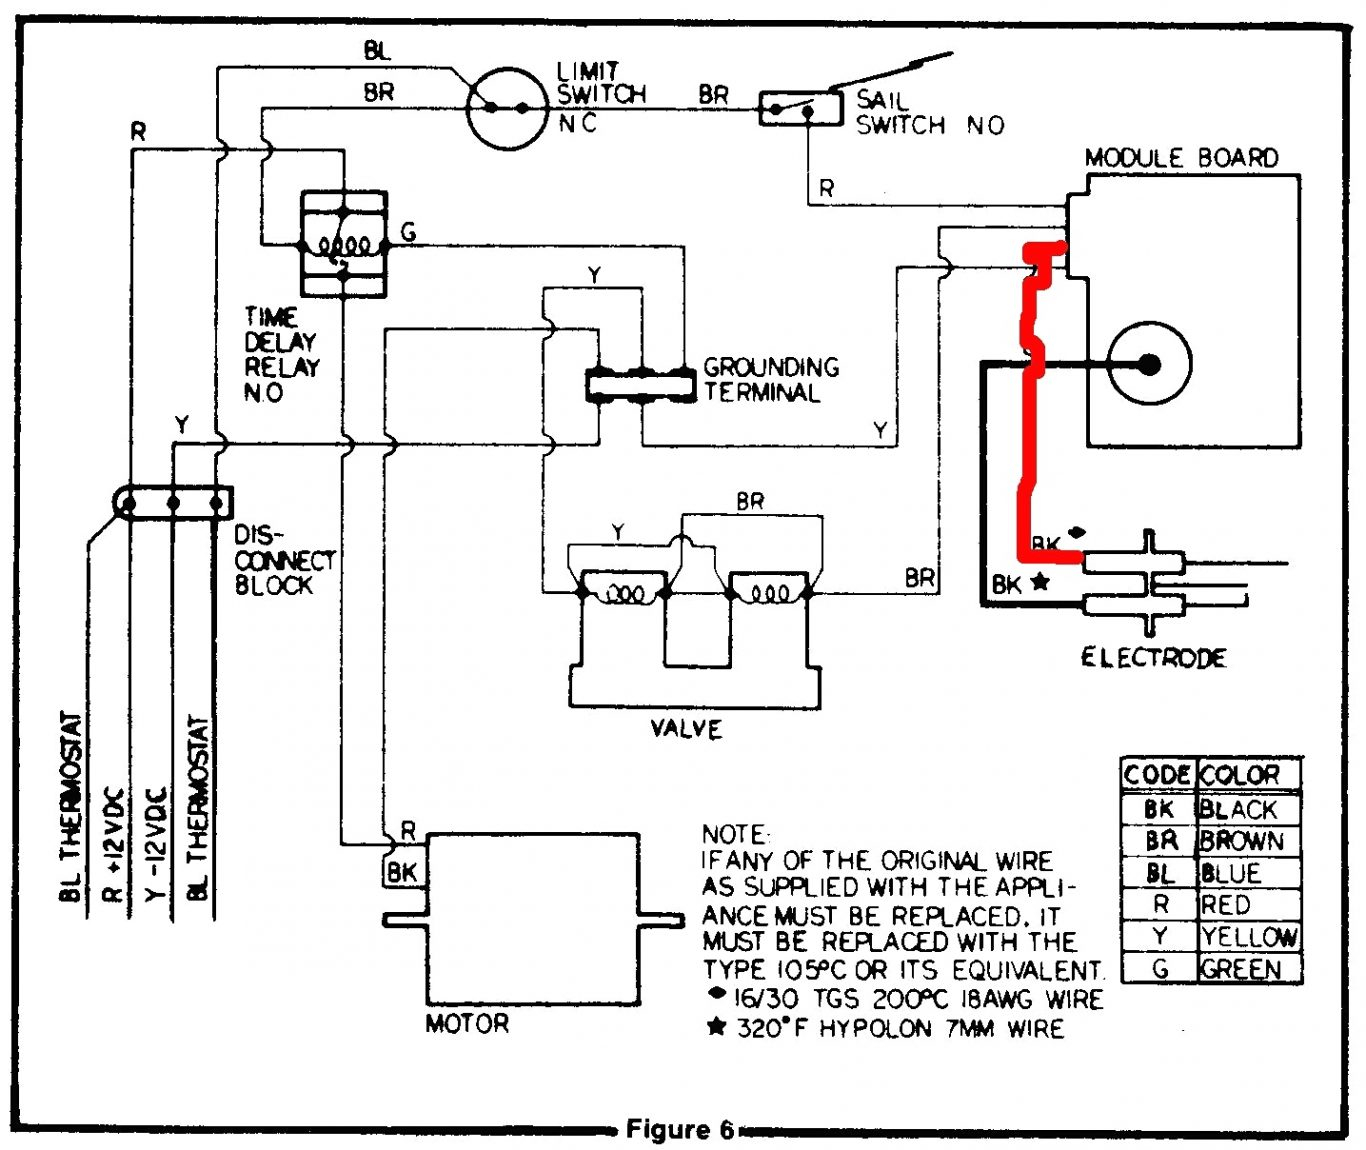 coleman evcon thermostat wiring diagram download coleman furnace thermostat wiring diagram free download radiant heat thermostat wiring diagram free download